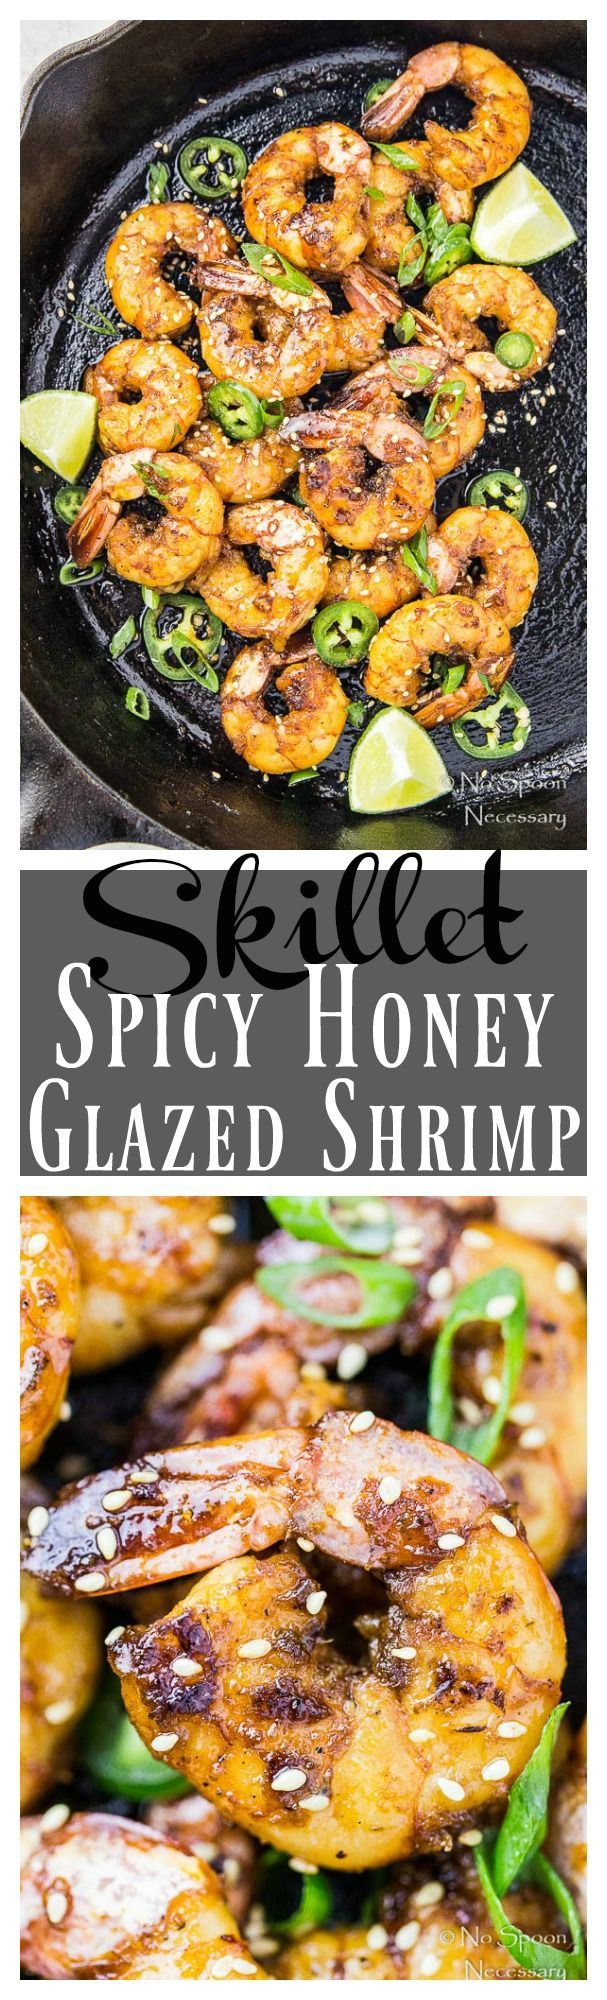 Spicy Honey Glazed Skillet Shrimp. One skillet, 8 ingredients, and ready, from prep to finish, in just 16 minutes!